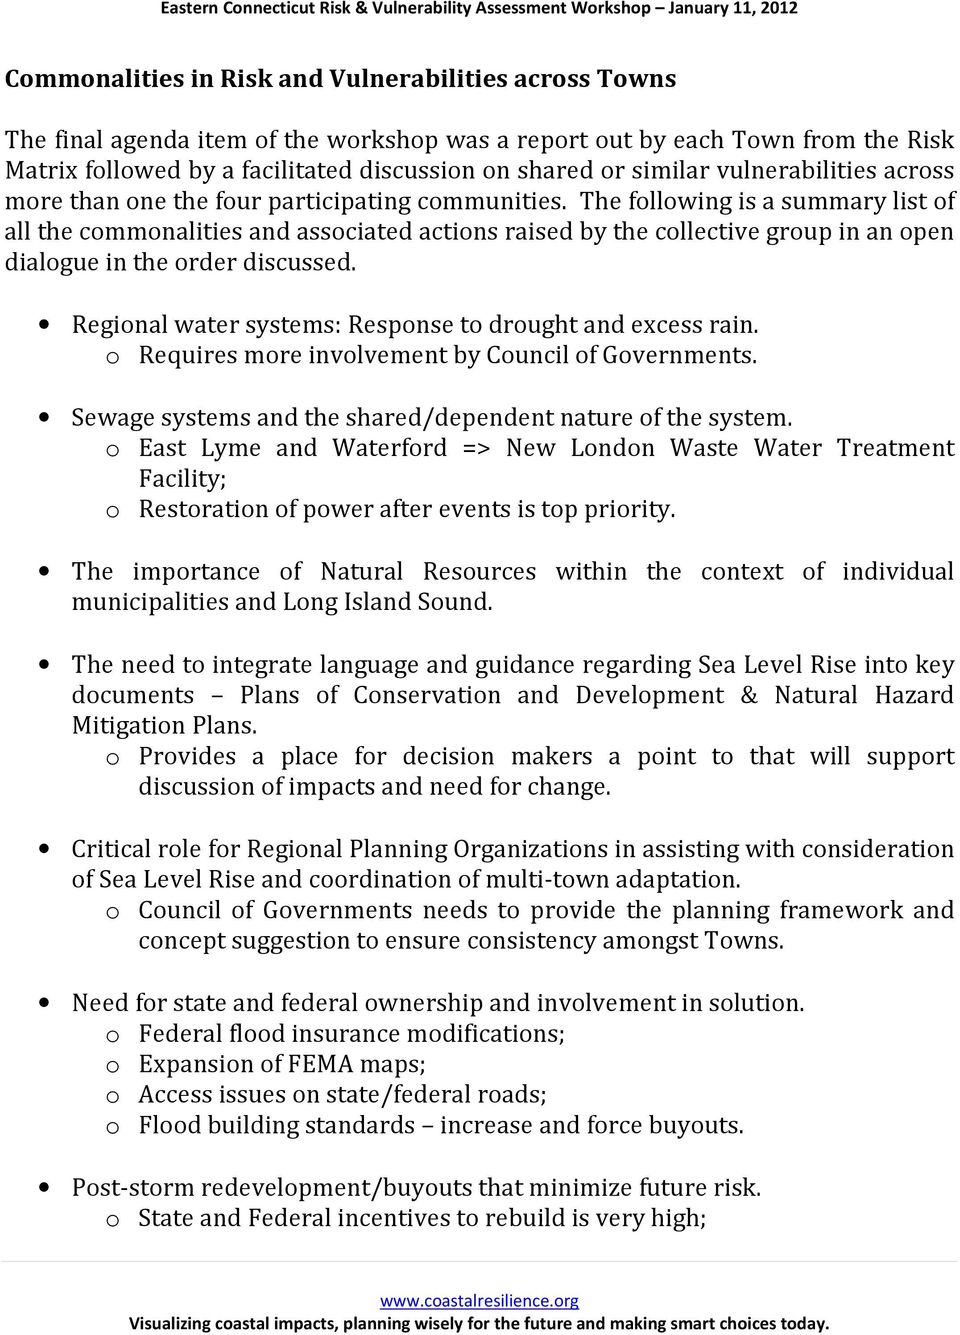 The following is a summary list of all the commonalities and associated actions raised by the collective group in an open dialogue in the order discussed.